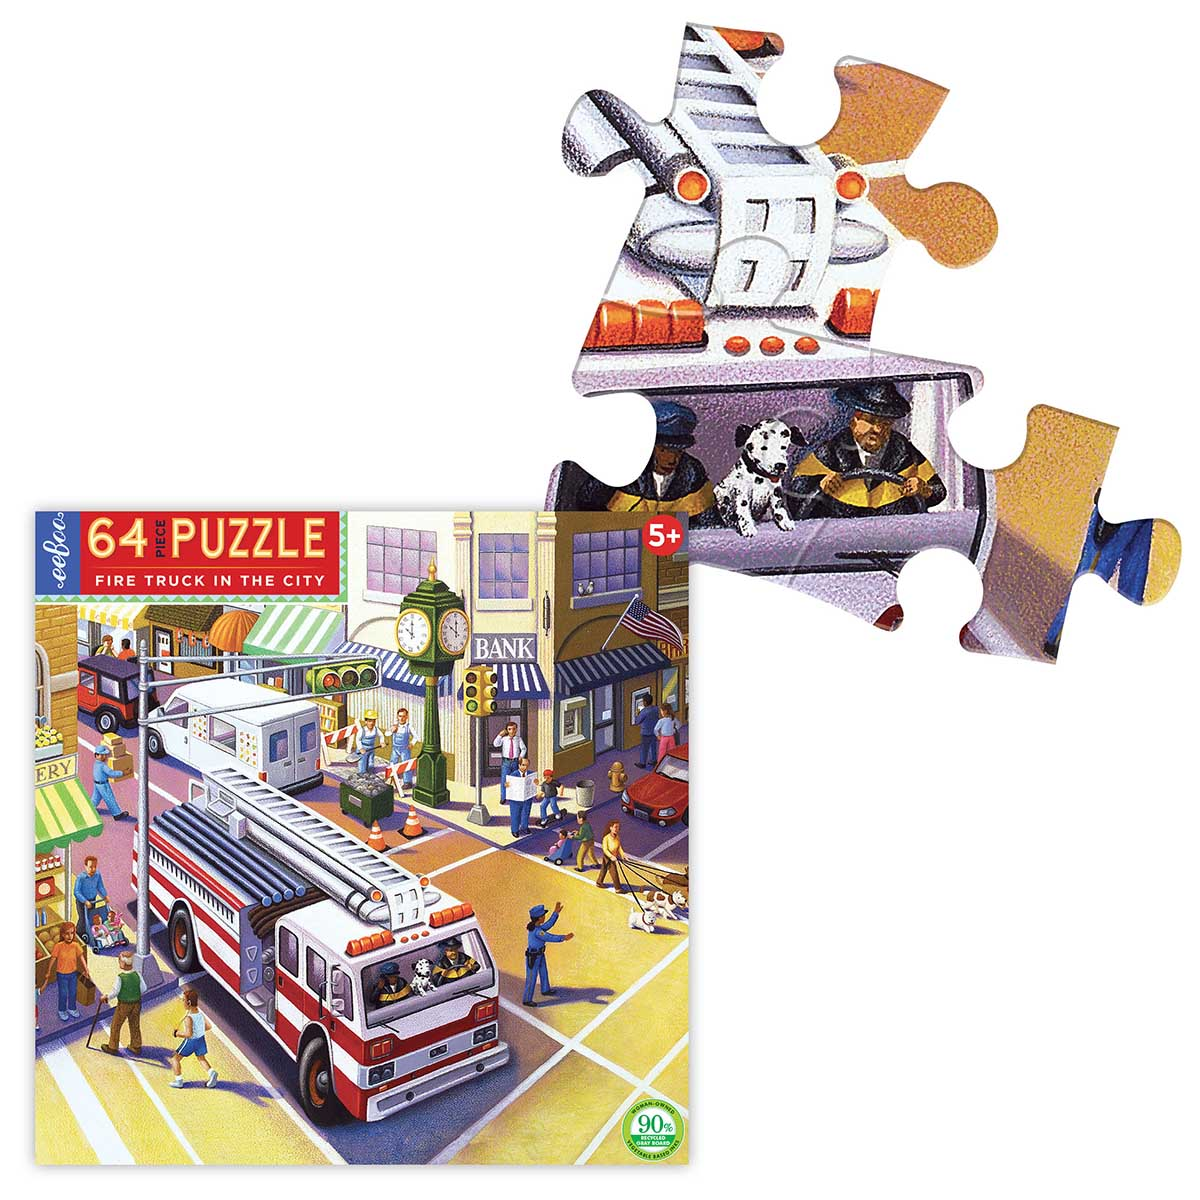 Fire Truck in the City Vehicles Jigsaw Puzzle